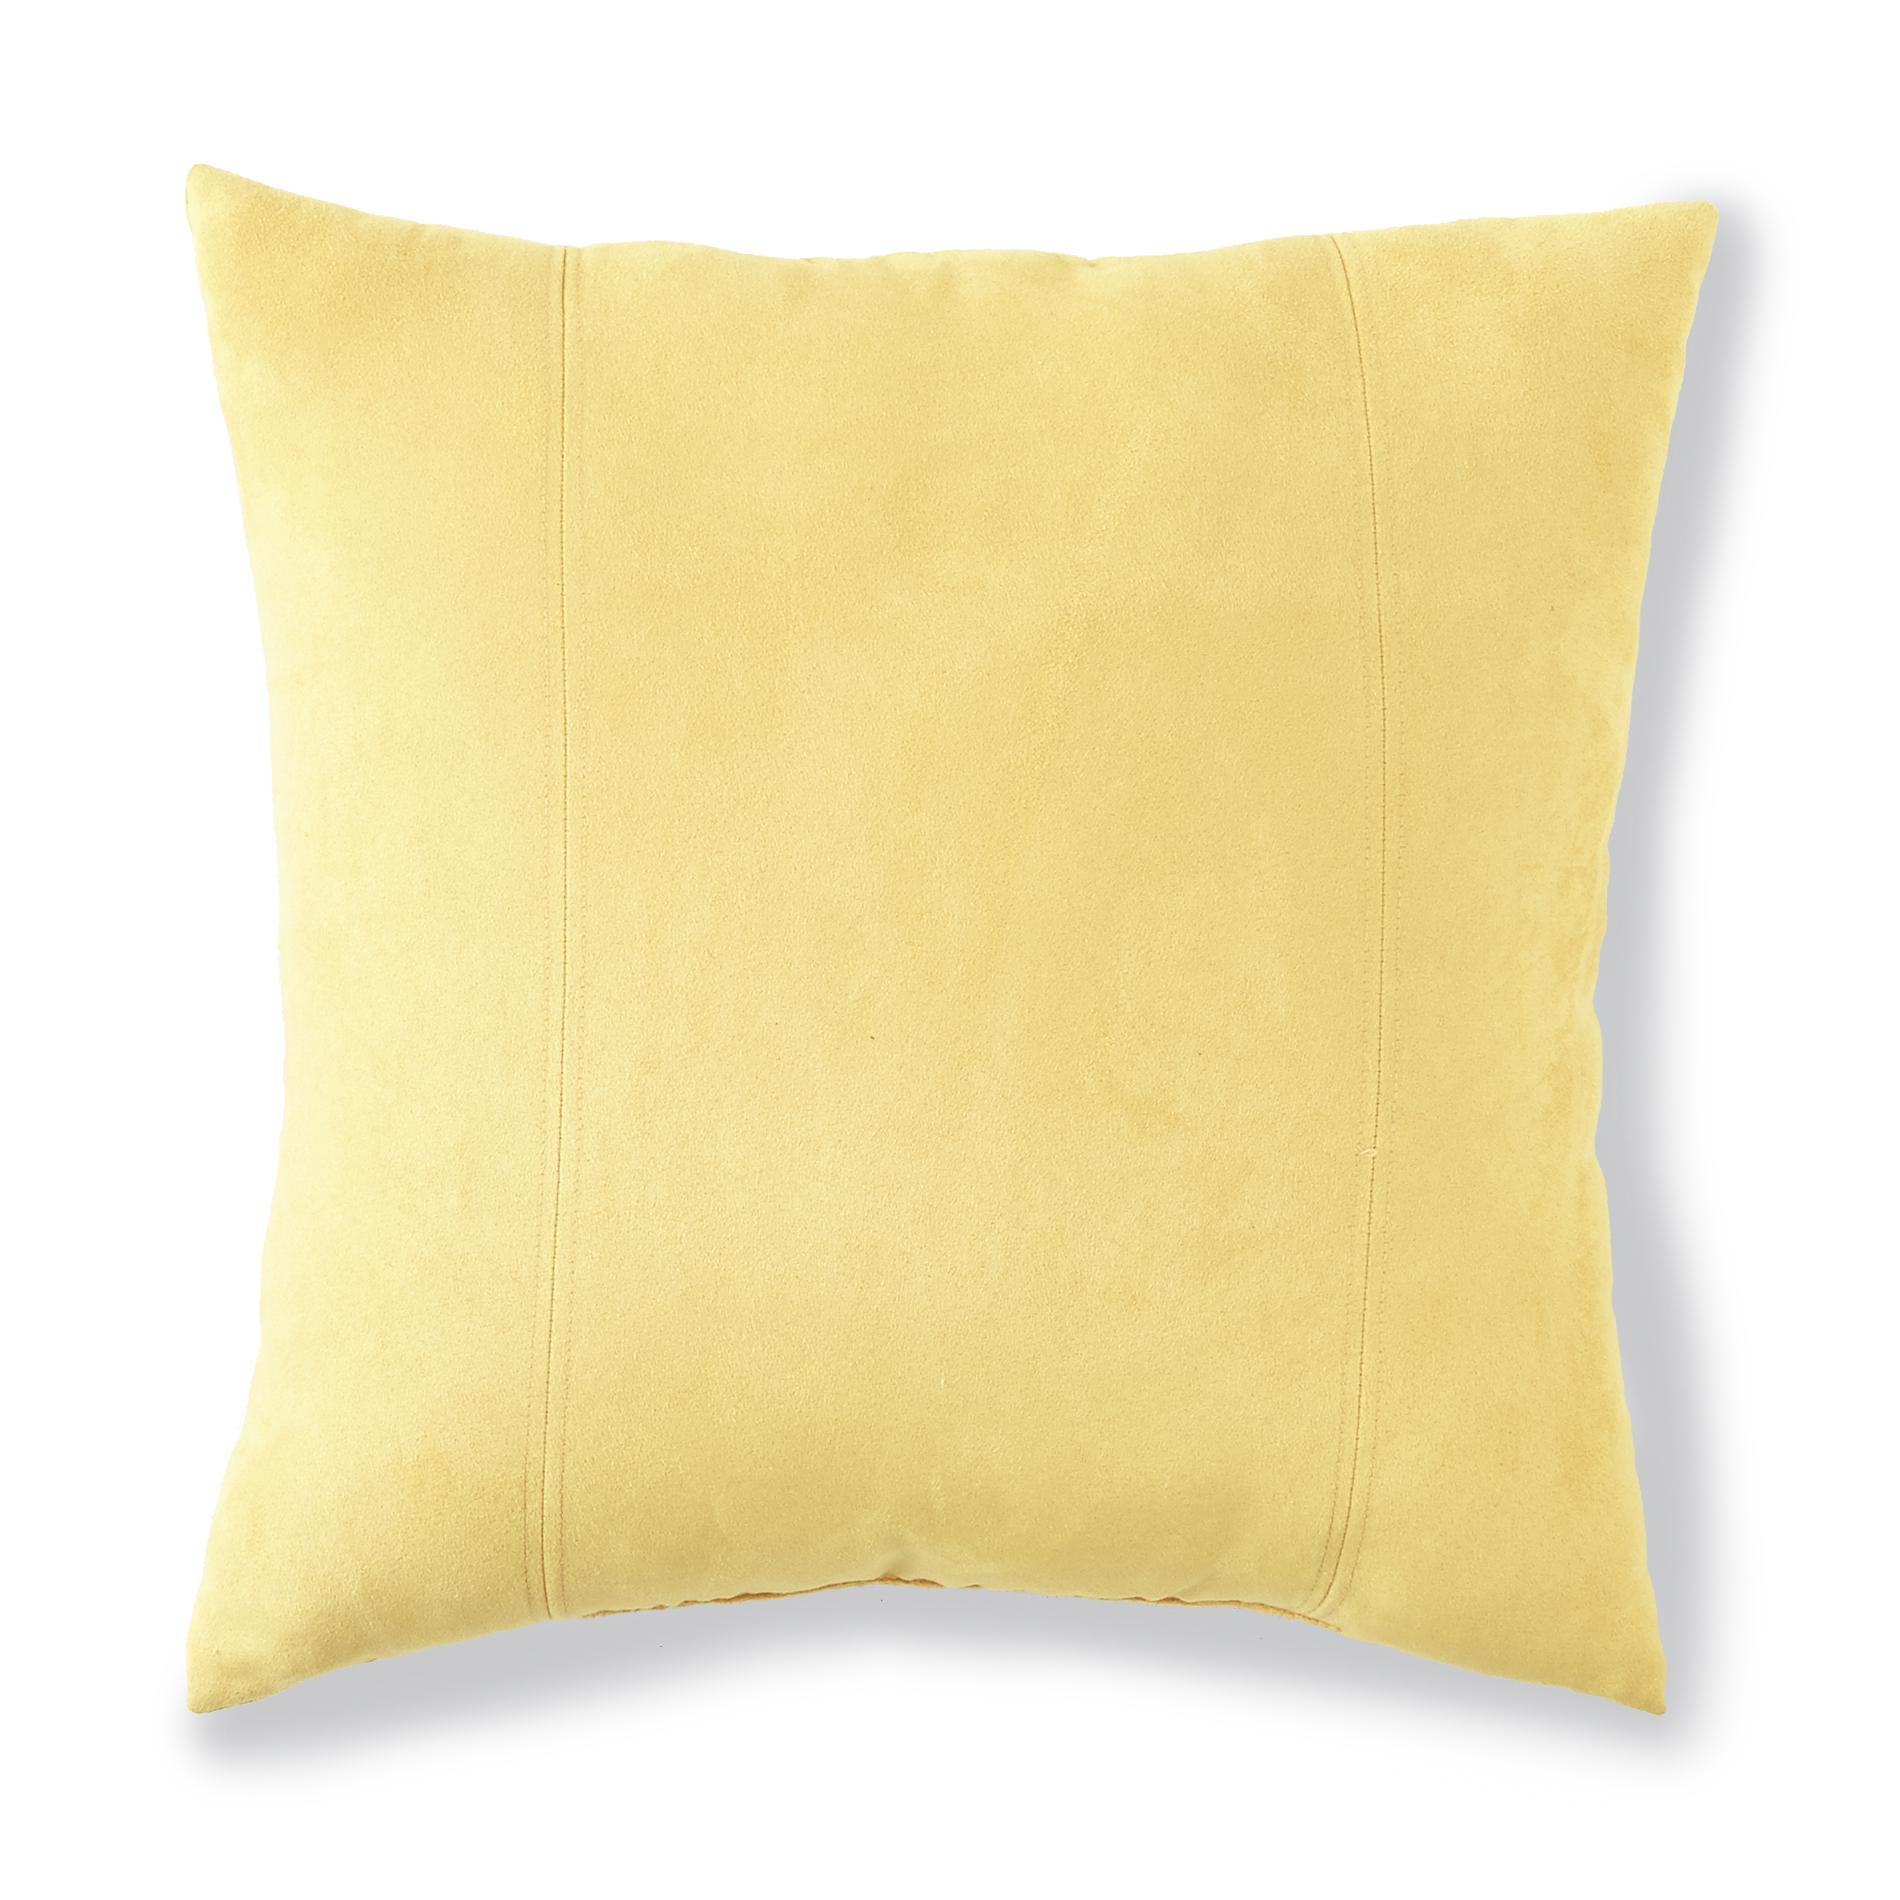 Decorative Pillows Kmart : Essential Home Decorative Pillow